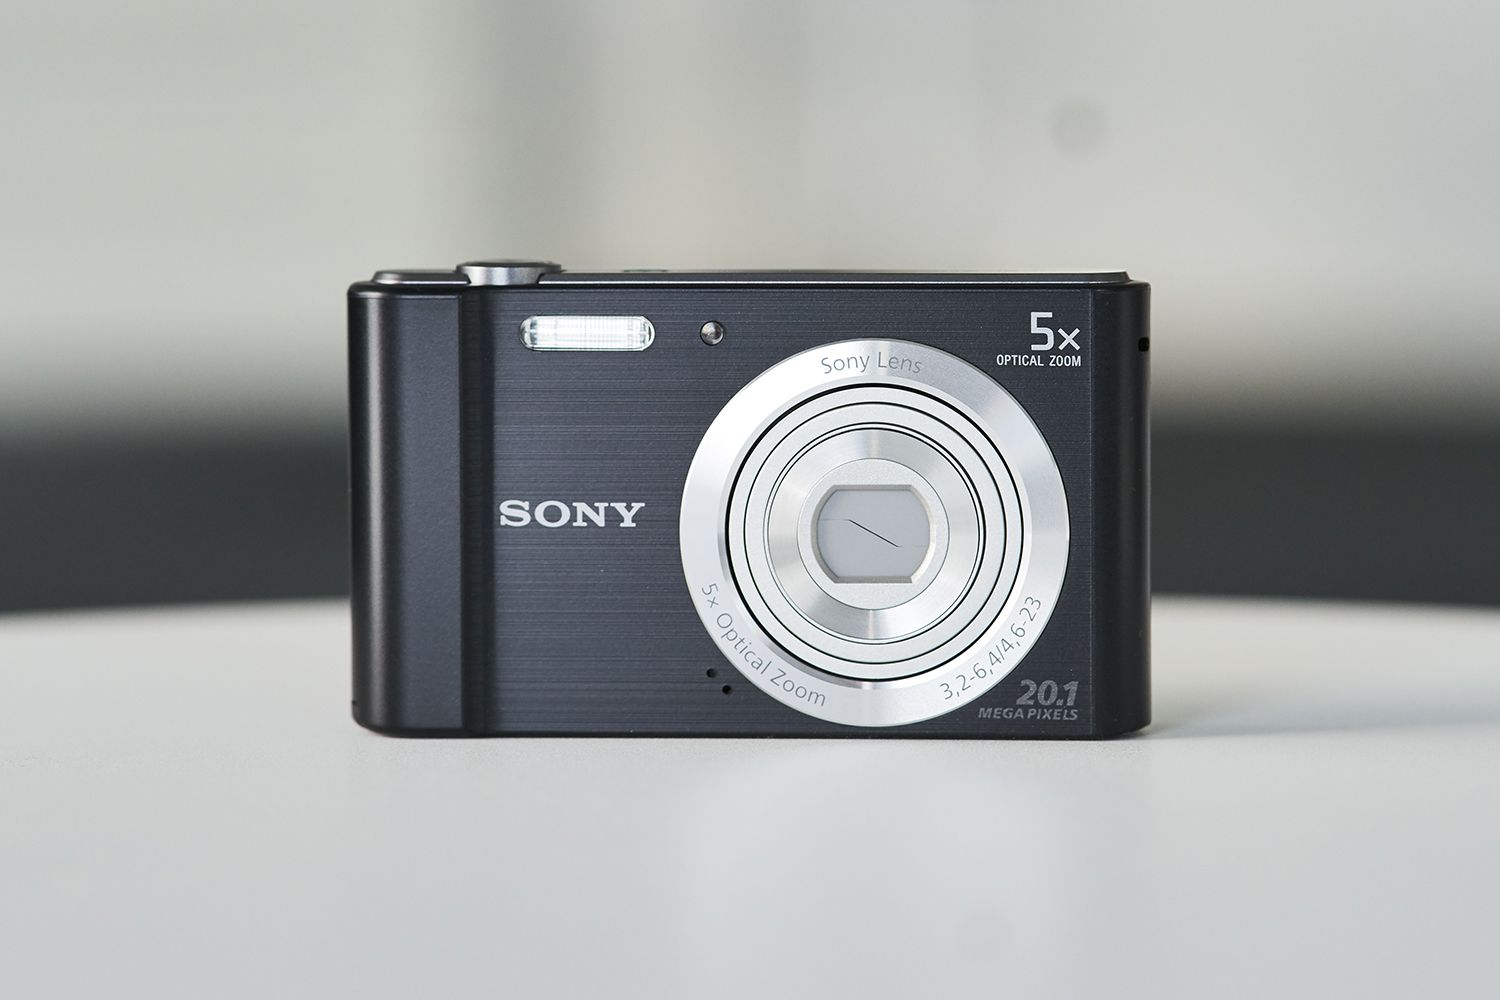 Sony DSC-W800 Review: Solid Performance at an Approachable Price Point